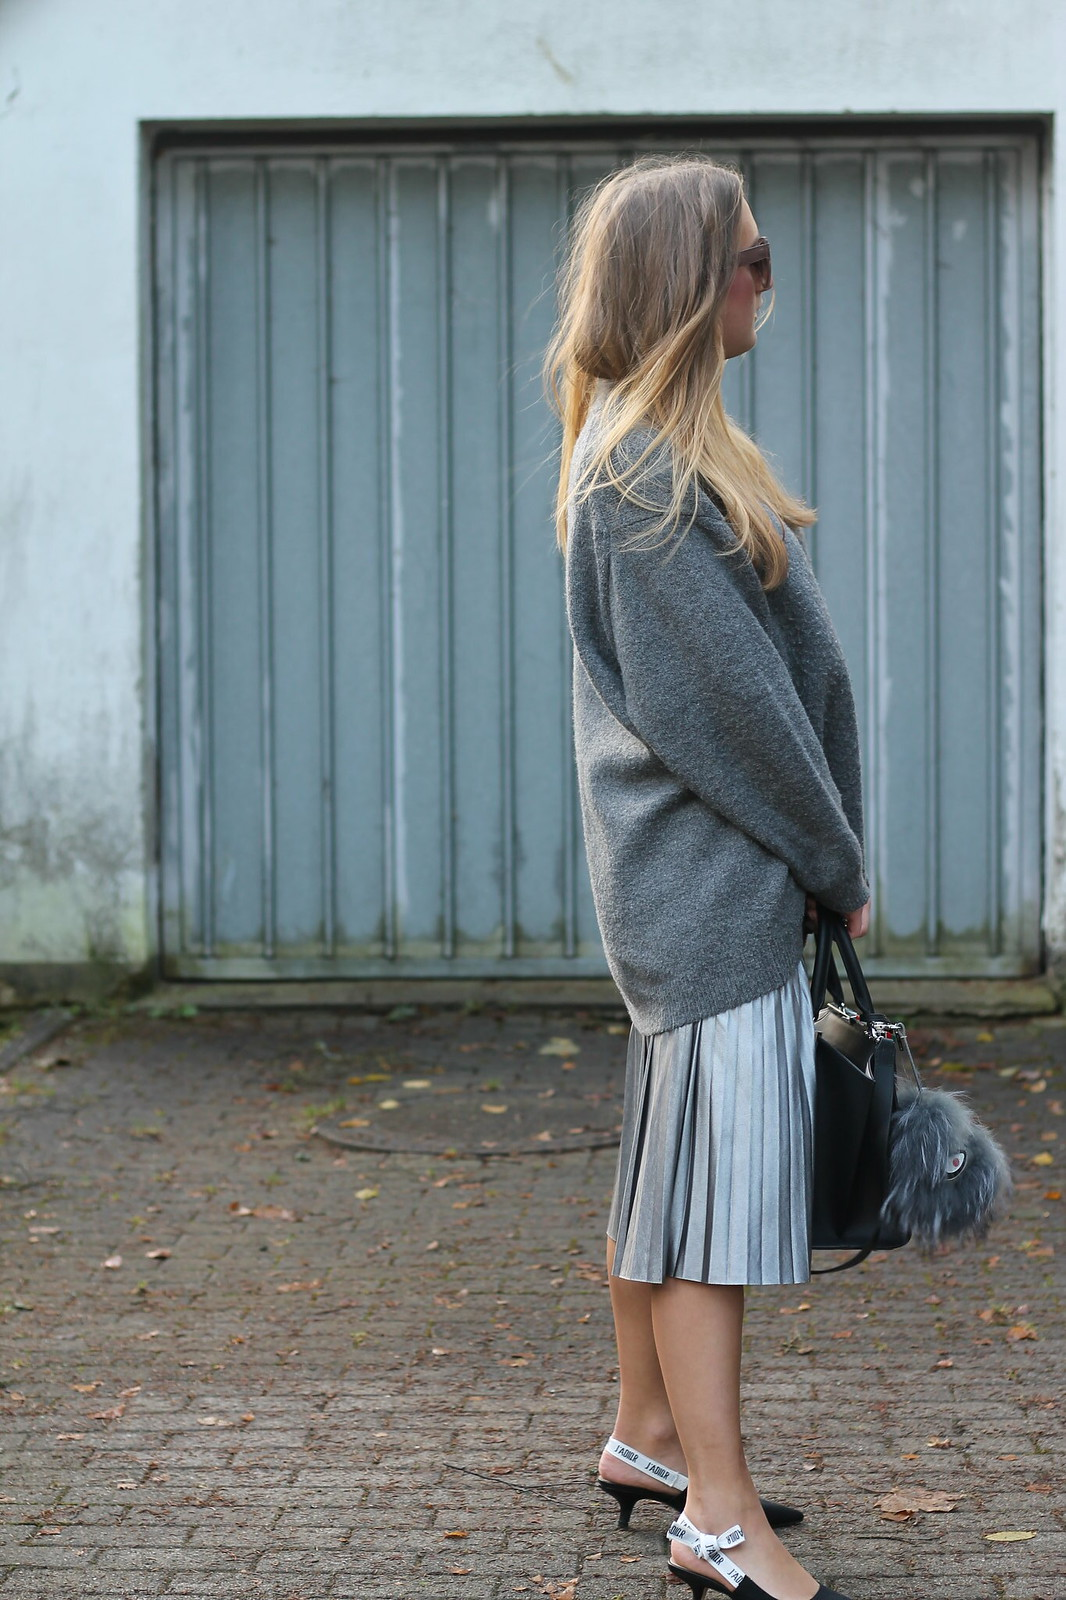 silver-skirt-and-sweater-whole-outfit-wiebkembg